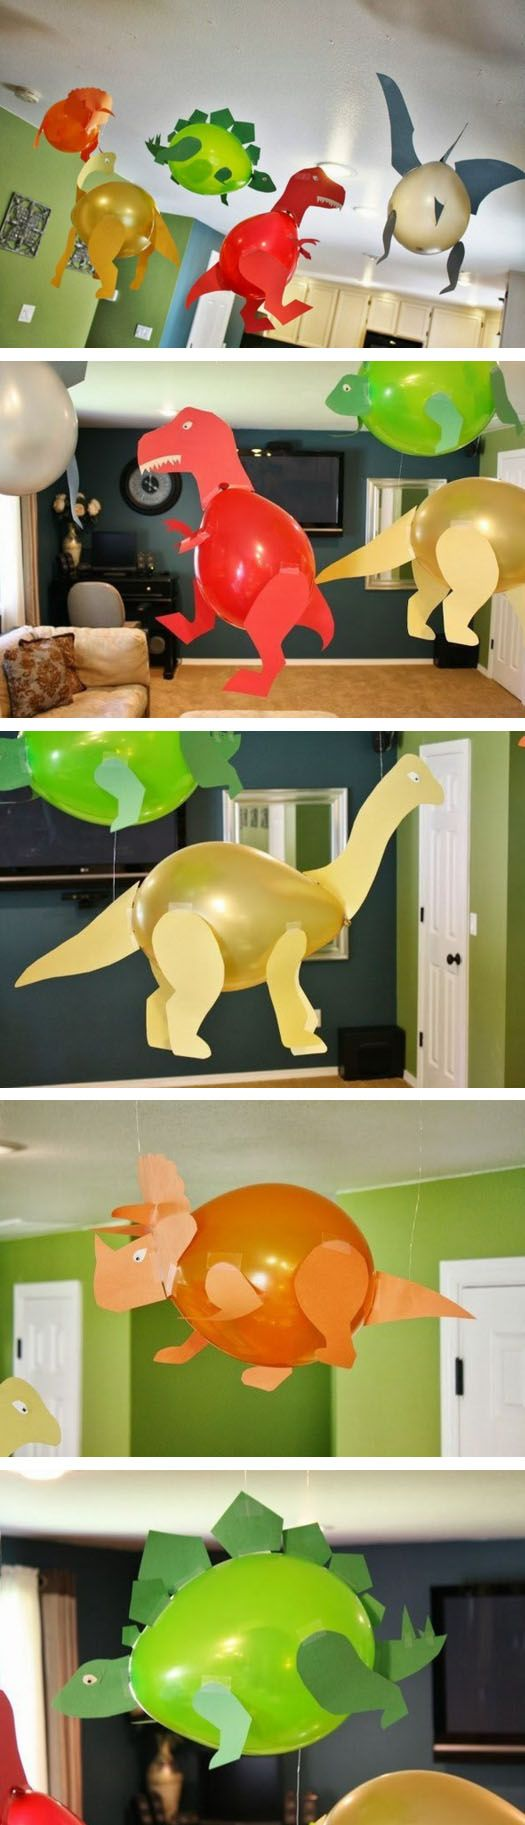 Ballons Ang Paper Is All You Need To Make Home Decor For Kids Party Art